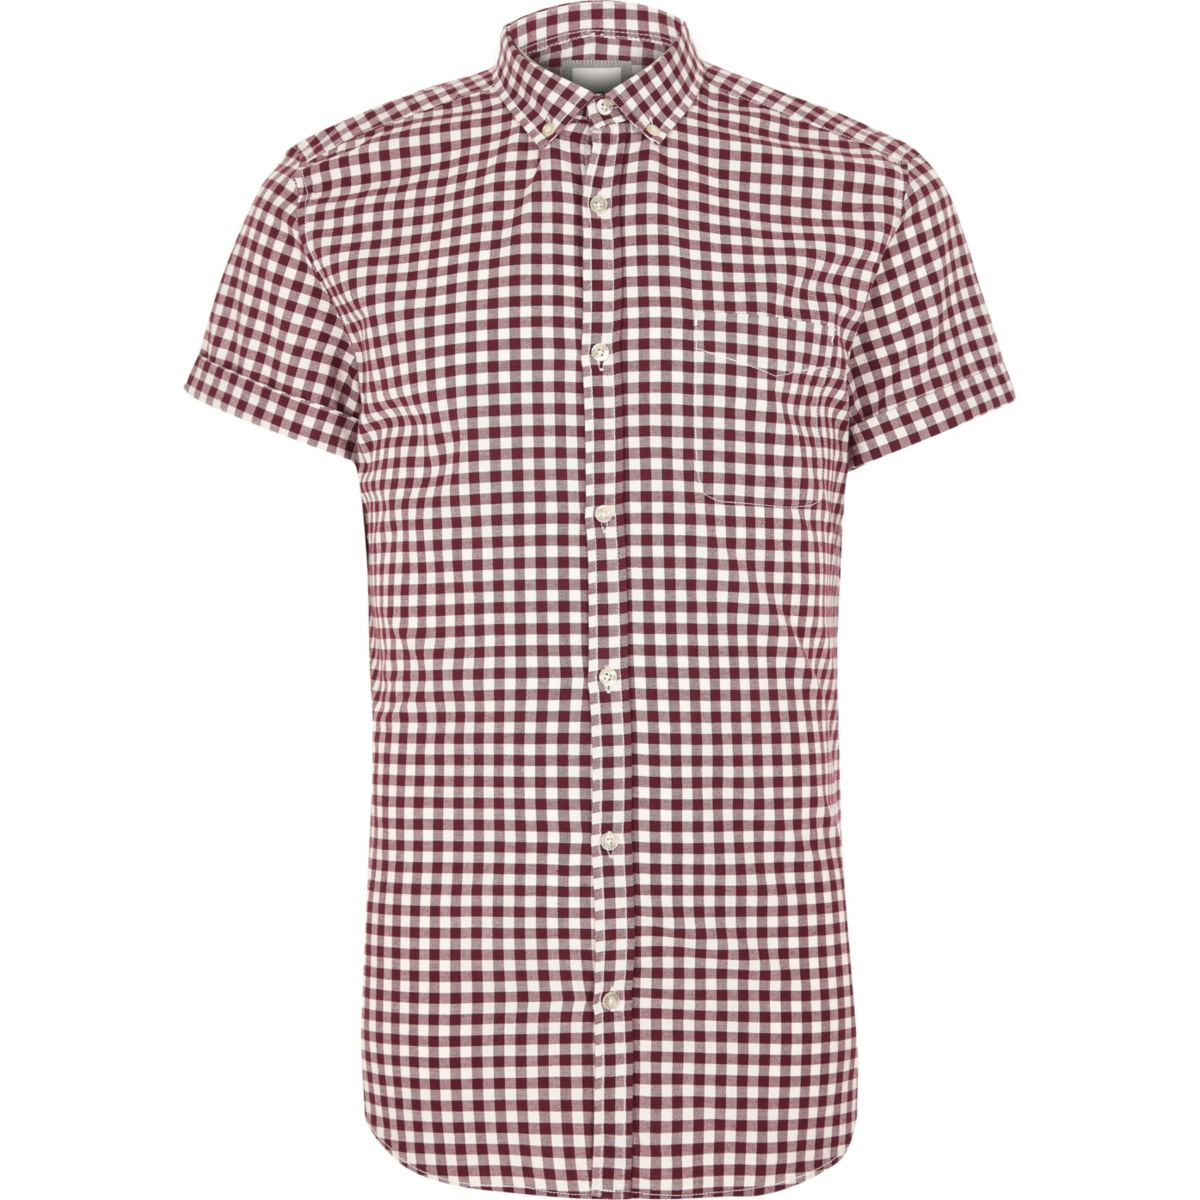 Red gingham slim fit short sleeve shirt shirts sale men for Red and white gingham shirt women s